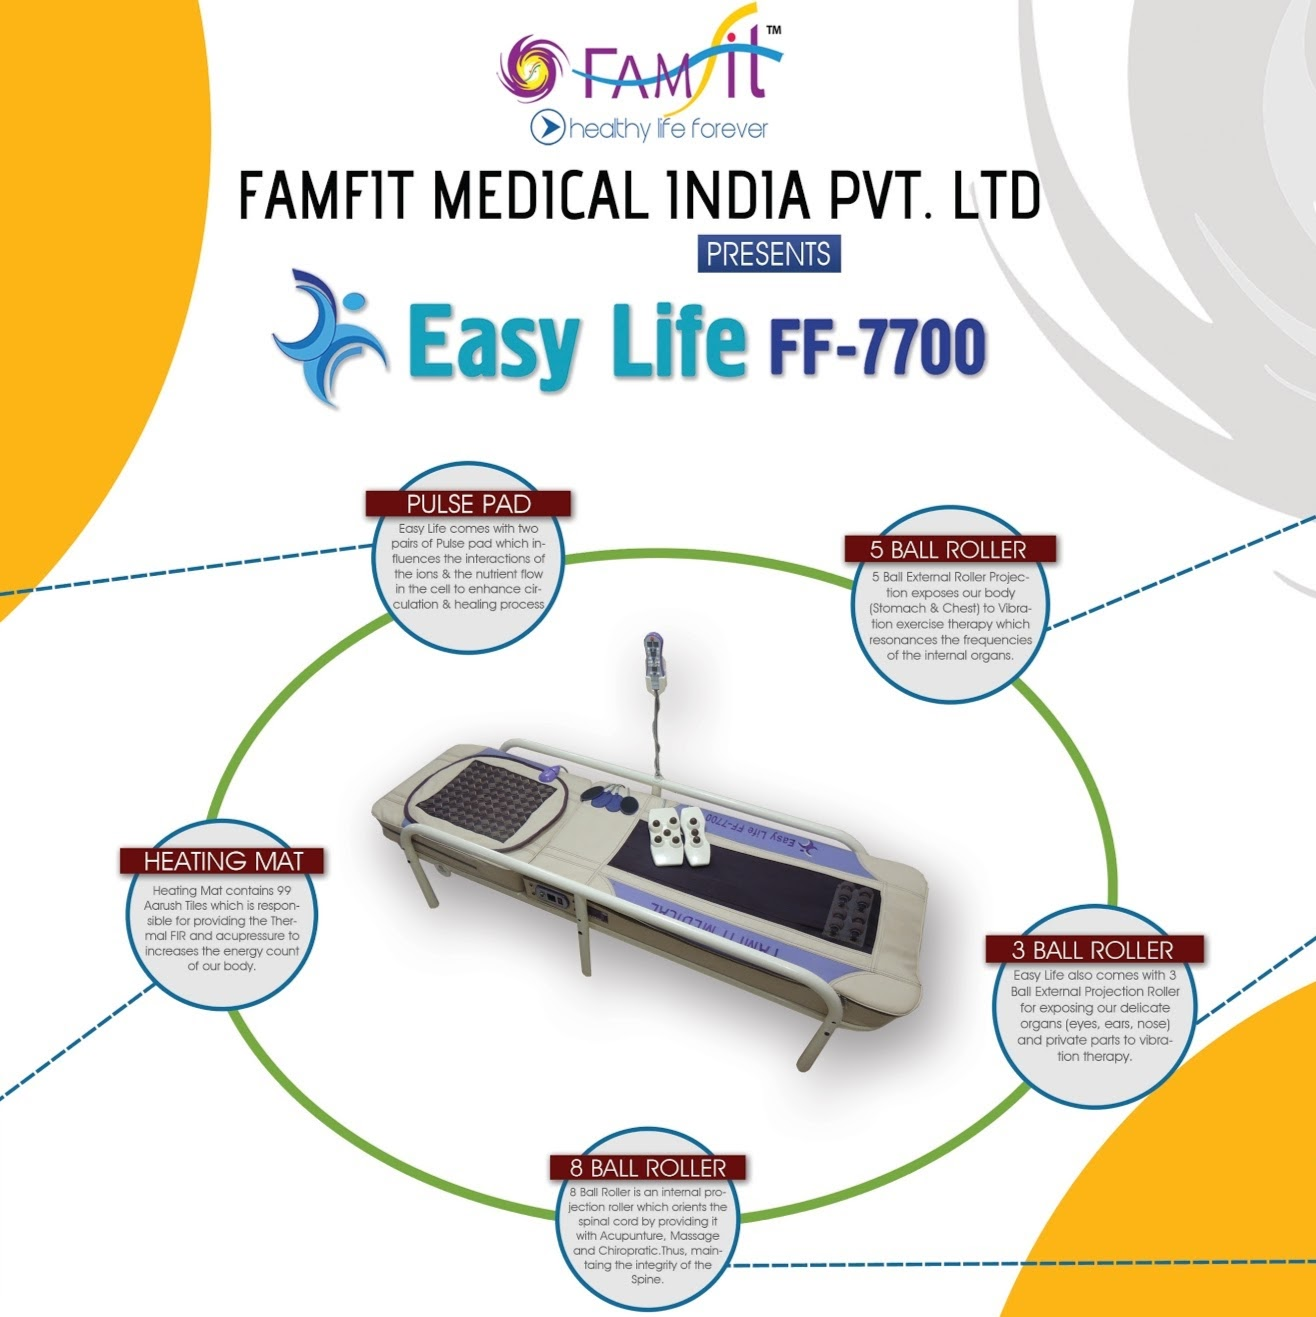 Famfit Medical India Pvt. Ltd - photo